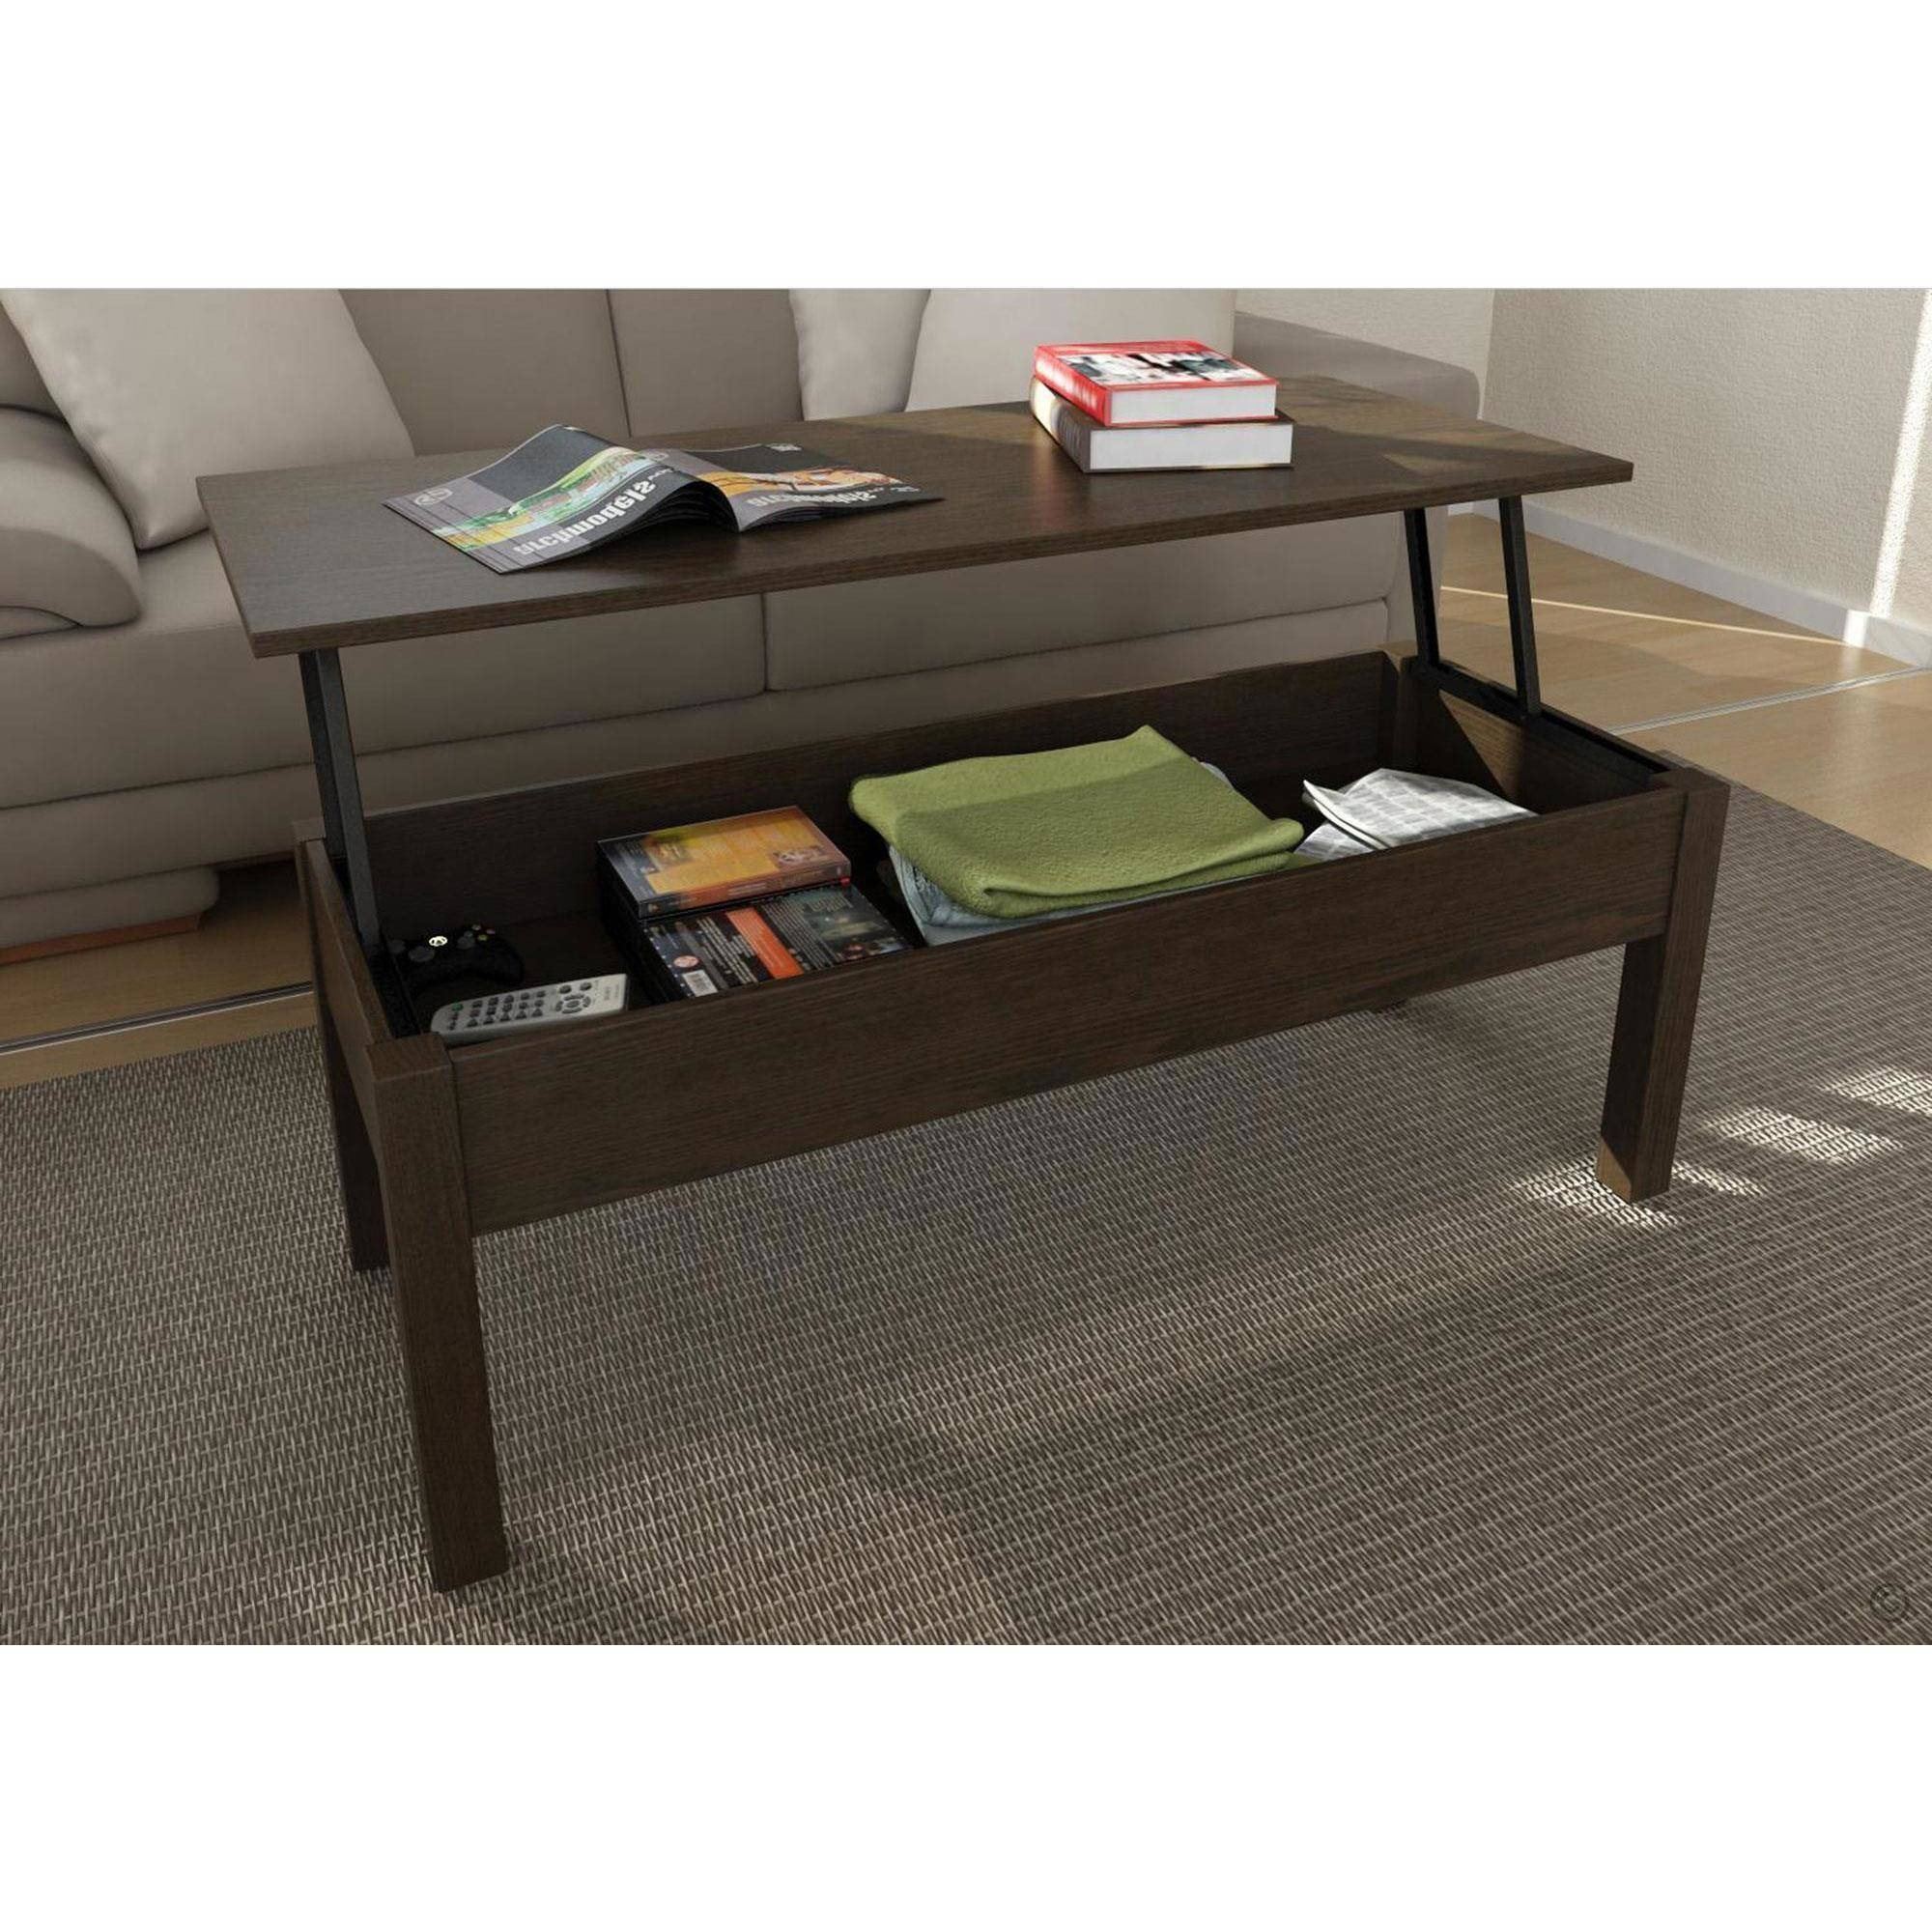 Mainstays Lift-Top Coffee Table, Multiple Colors - Walmart in Pull Up Coffee Tables (Image 22 of 30)